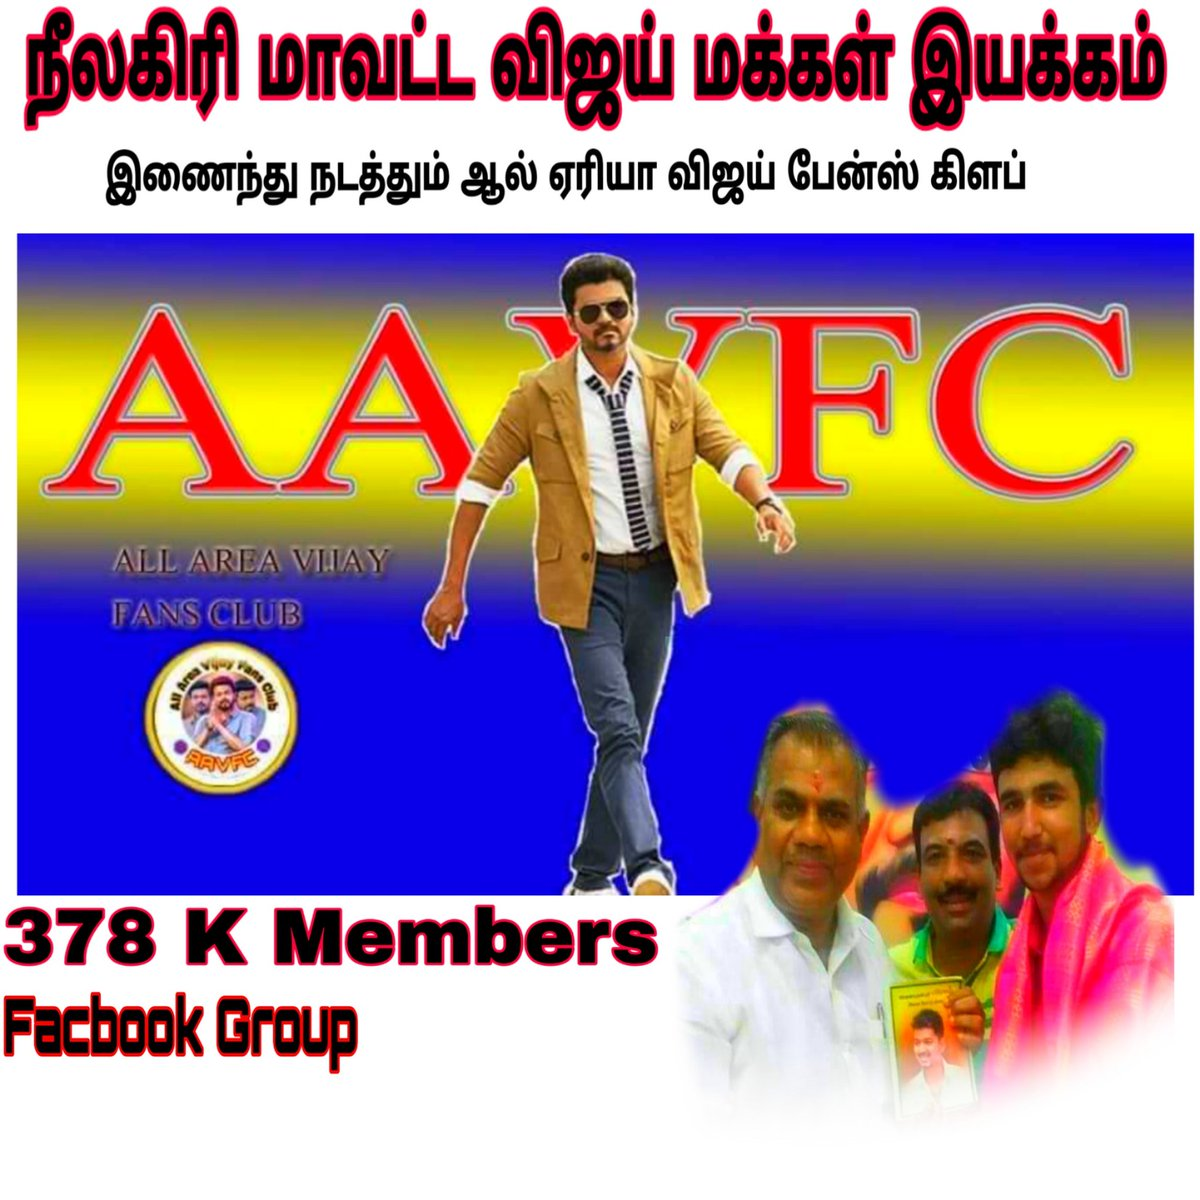 Thalapathy Santhosh CEO At AAVFC - @Thalapathysanu Twitter